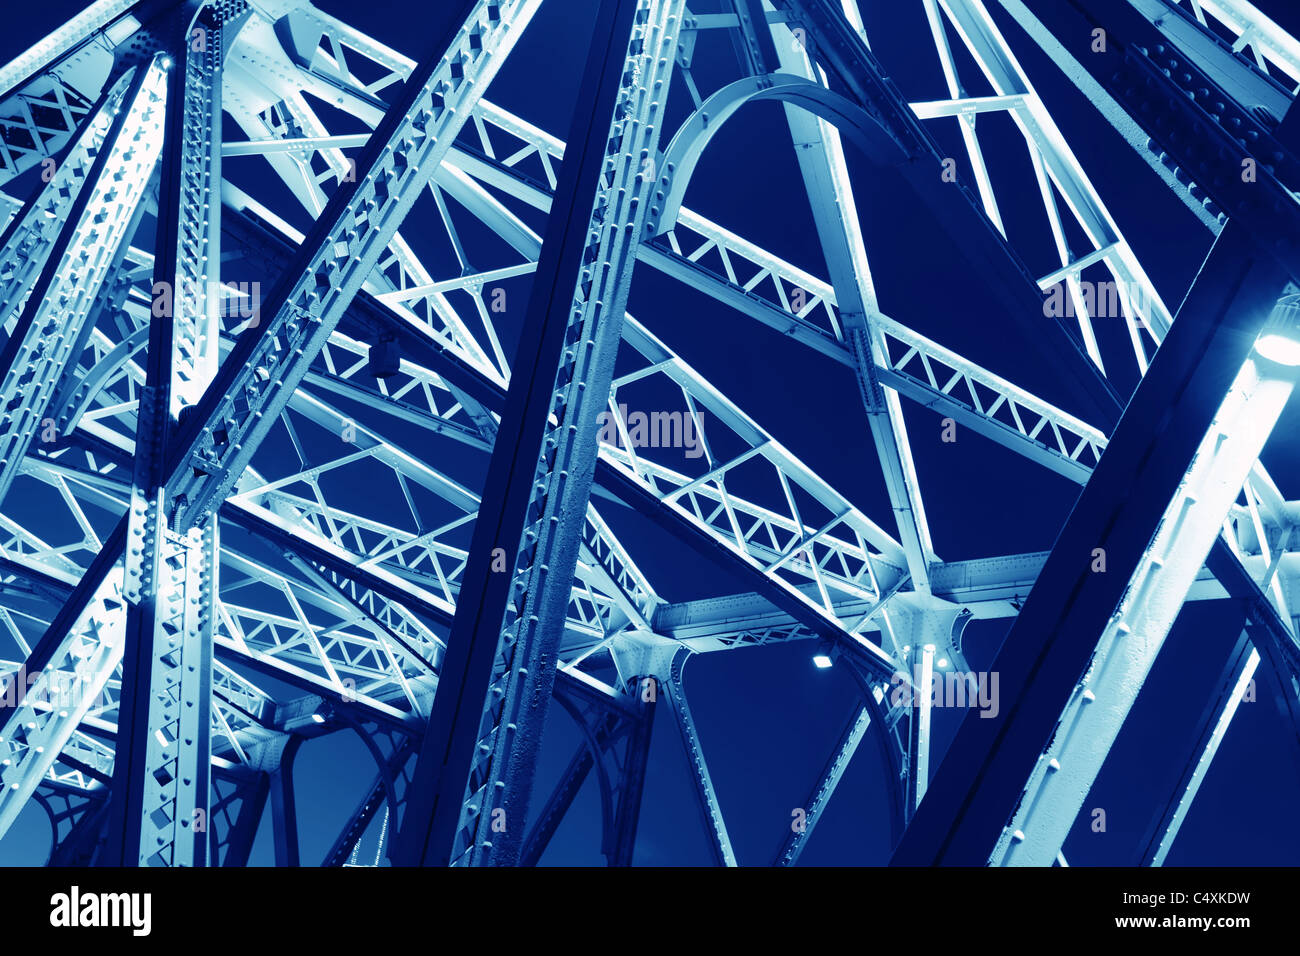 Steel structure for use as background - Stock Image